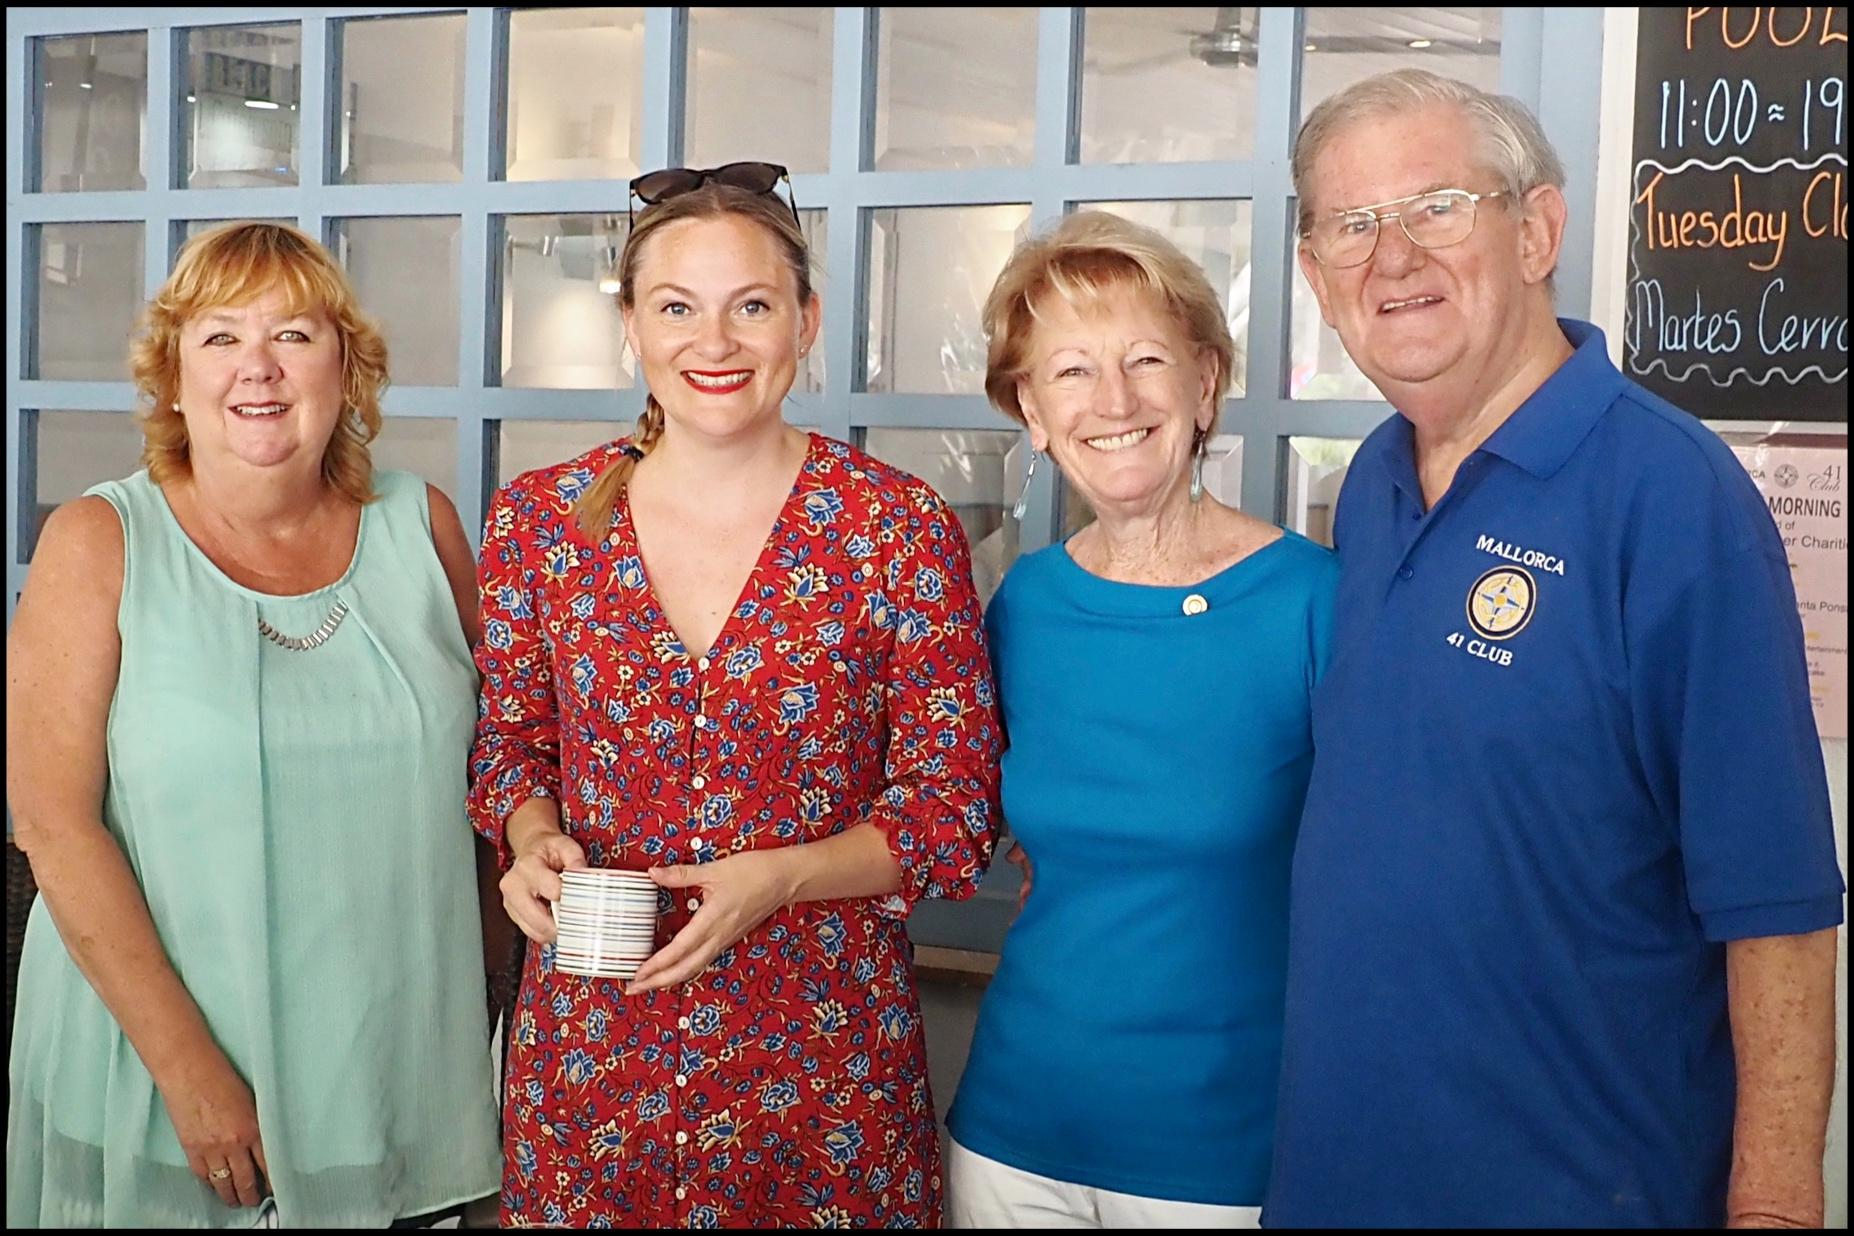 L-R: Lucy Gorman and Lucy Gorman from the British Consulate, Kate Menthink and Edward Ingram